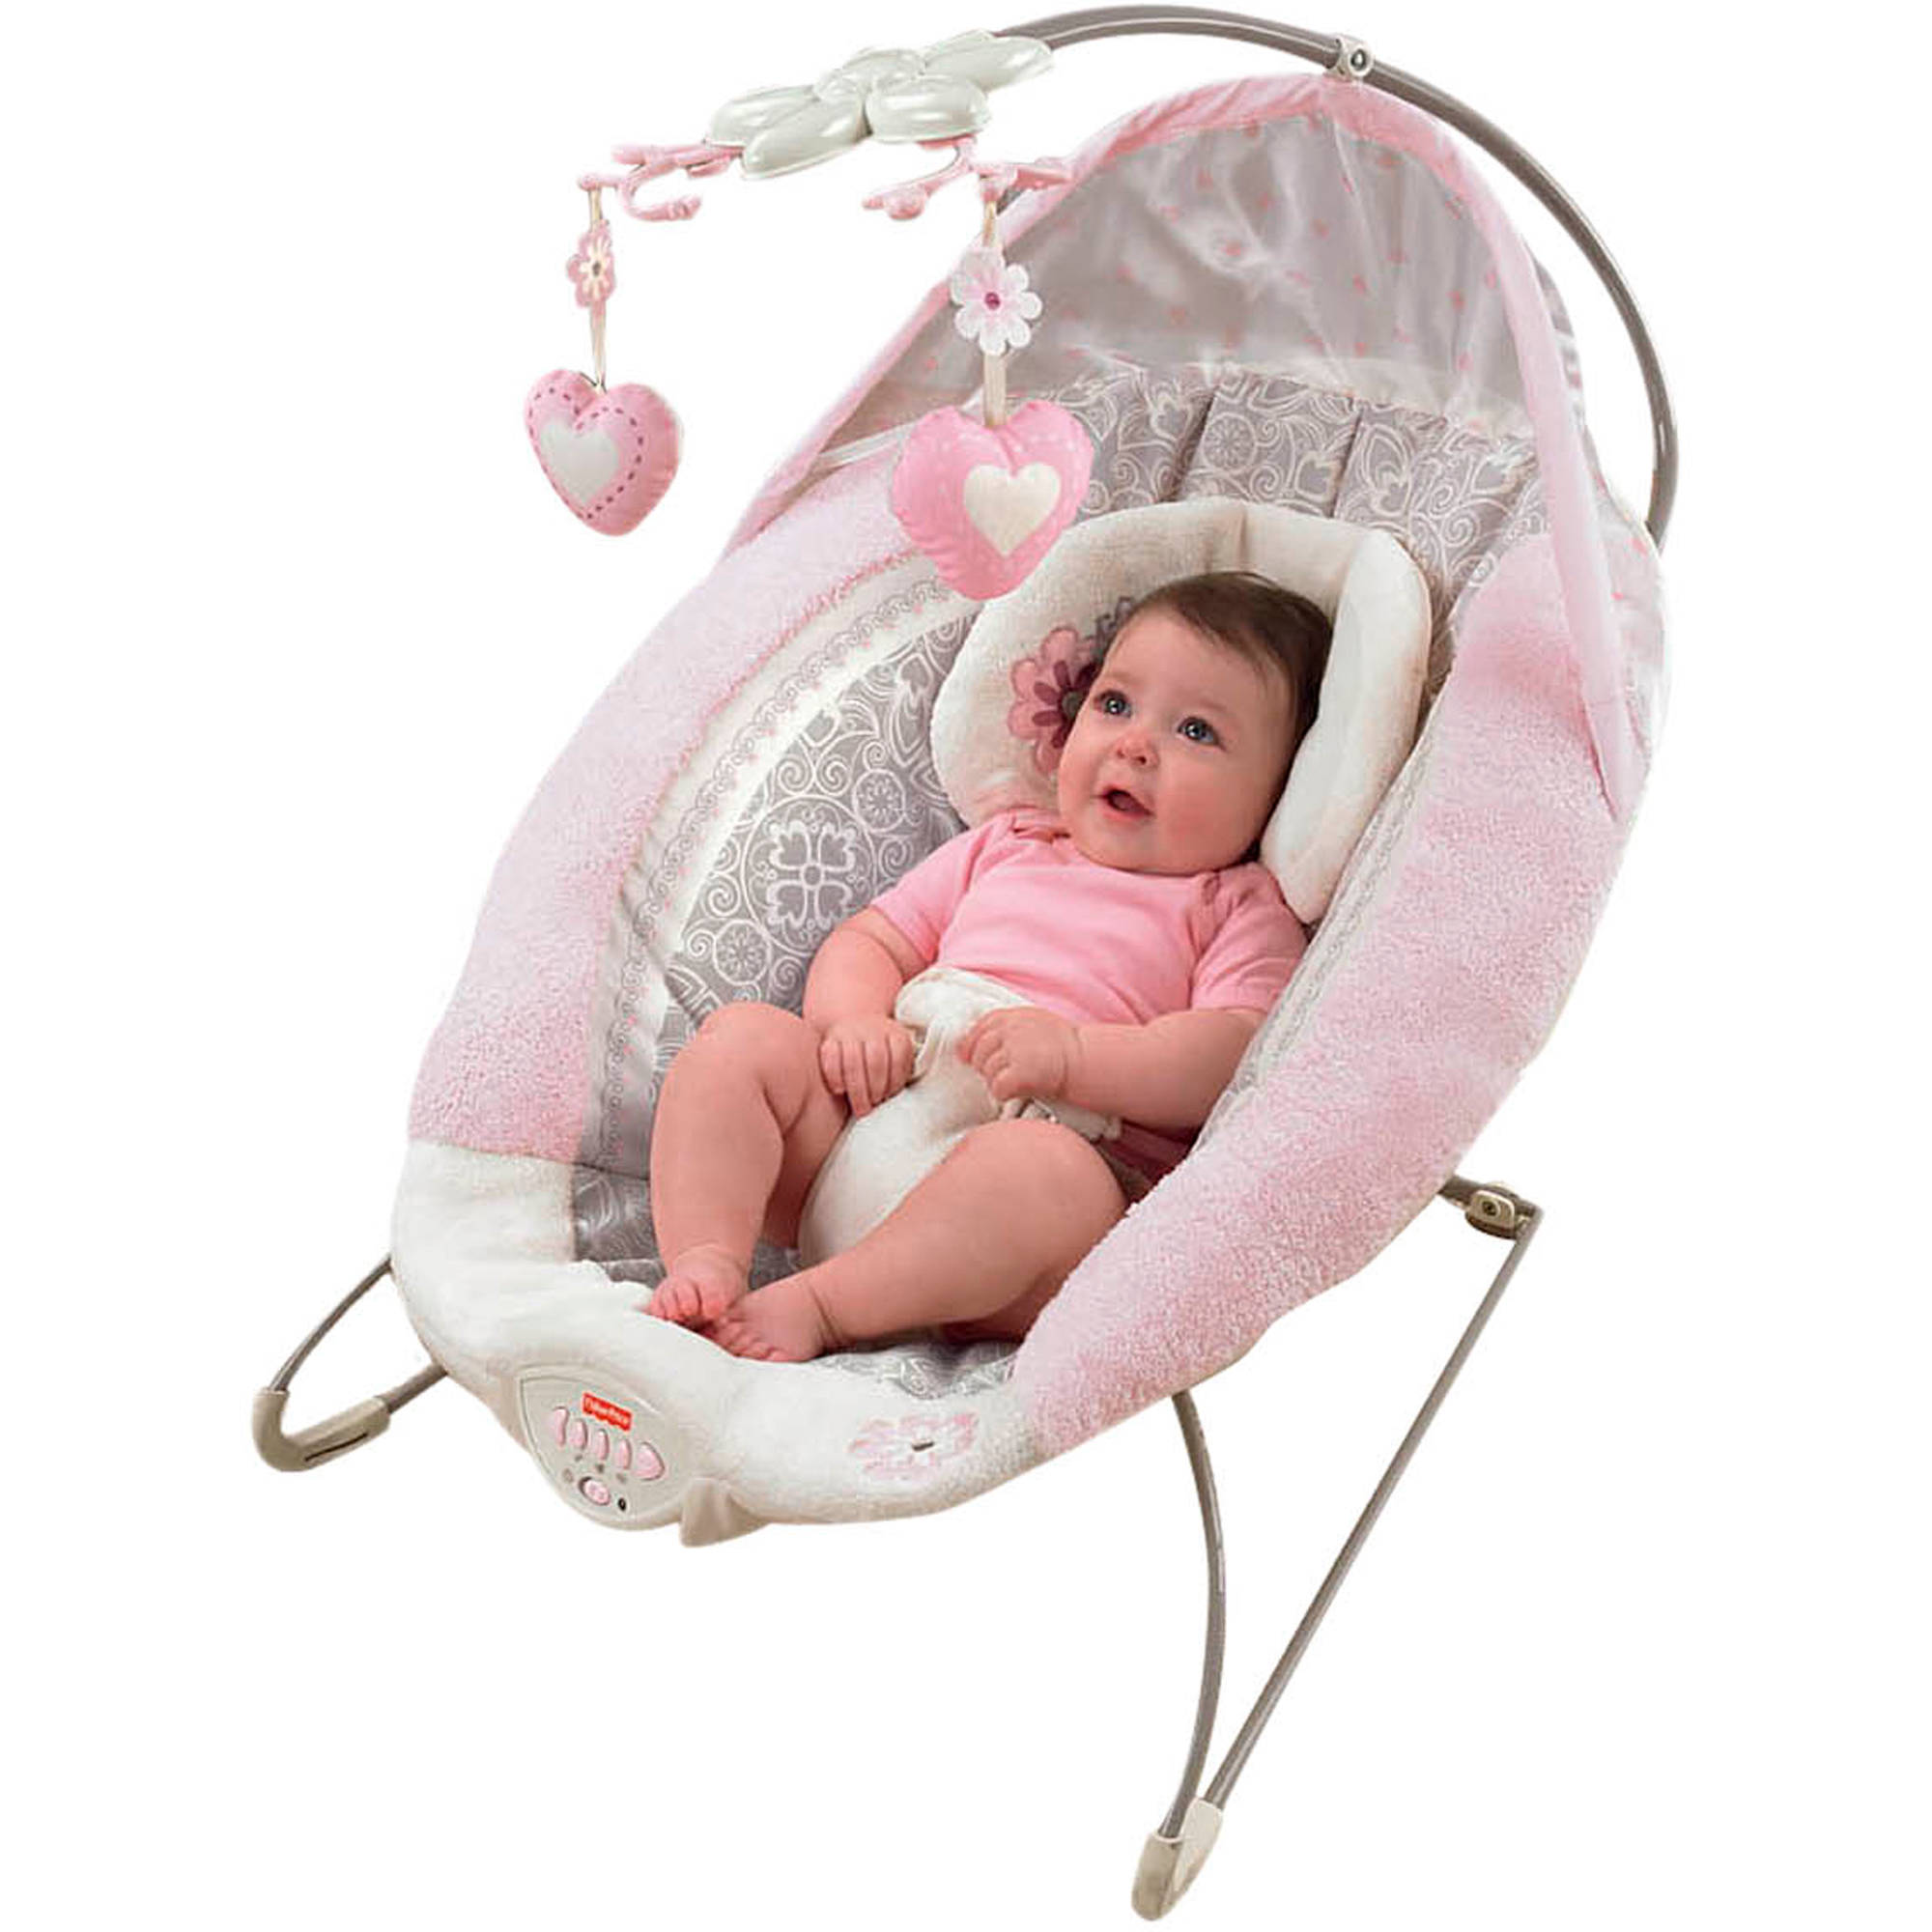 9e57adf02ec Baby Bjorn 005024US Bouncer Balance Soft Cotton - Rust Orange with Rattle  Teethe - Walmart.com